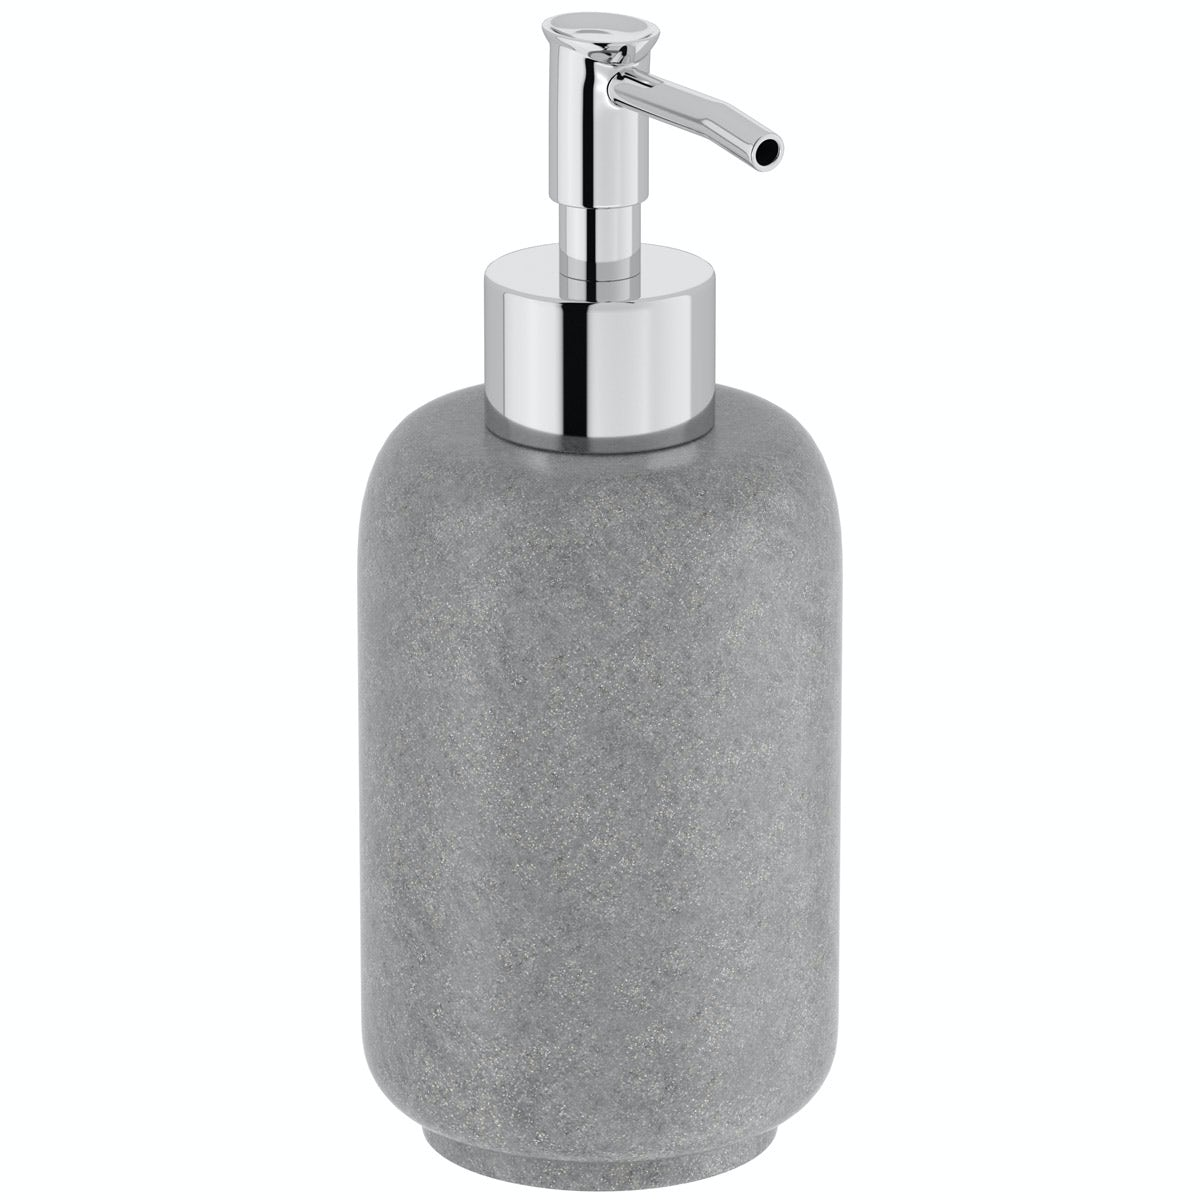 Mineral grey resin soap dispenser